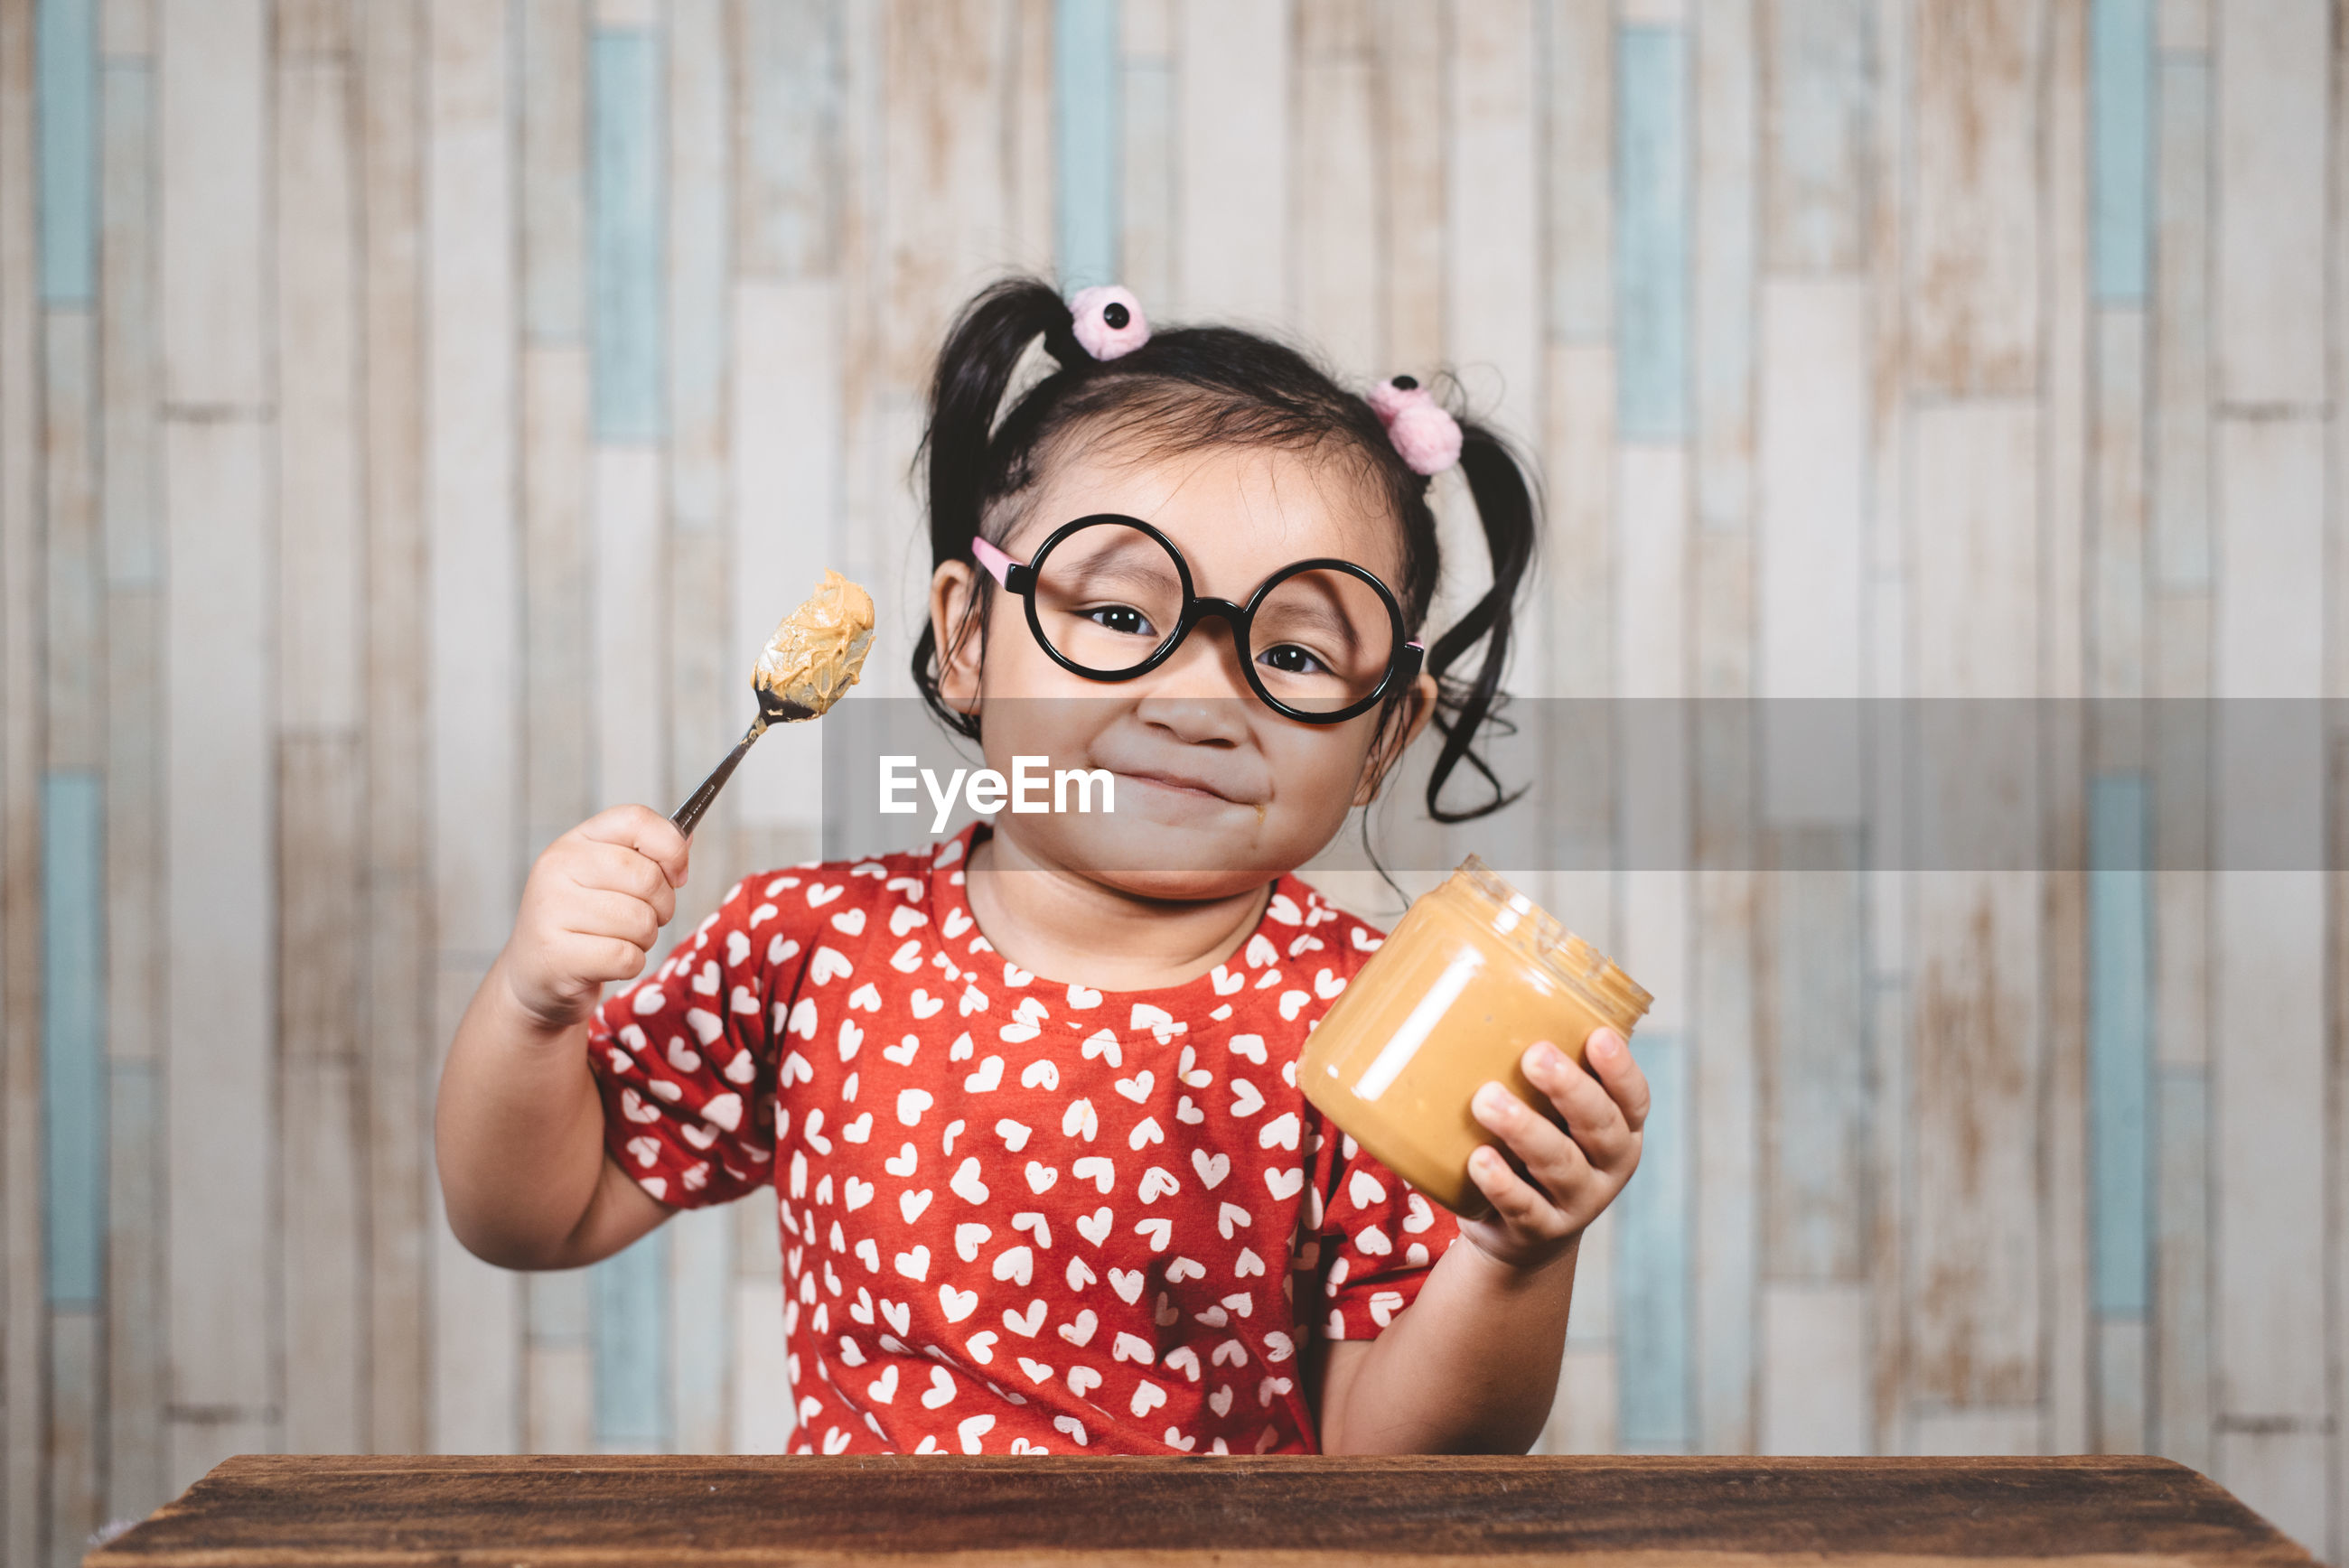 Portrait of happy girl holding spoon and peanut butter bottle